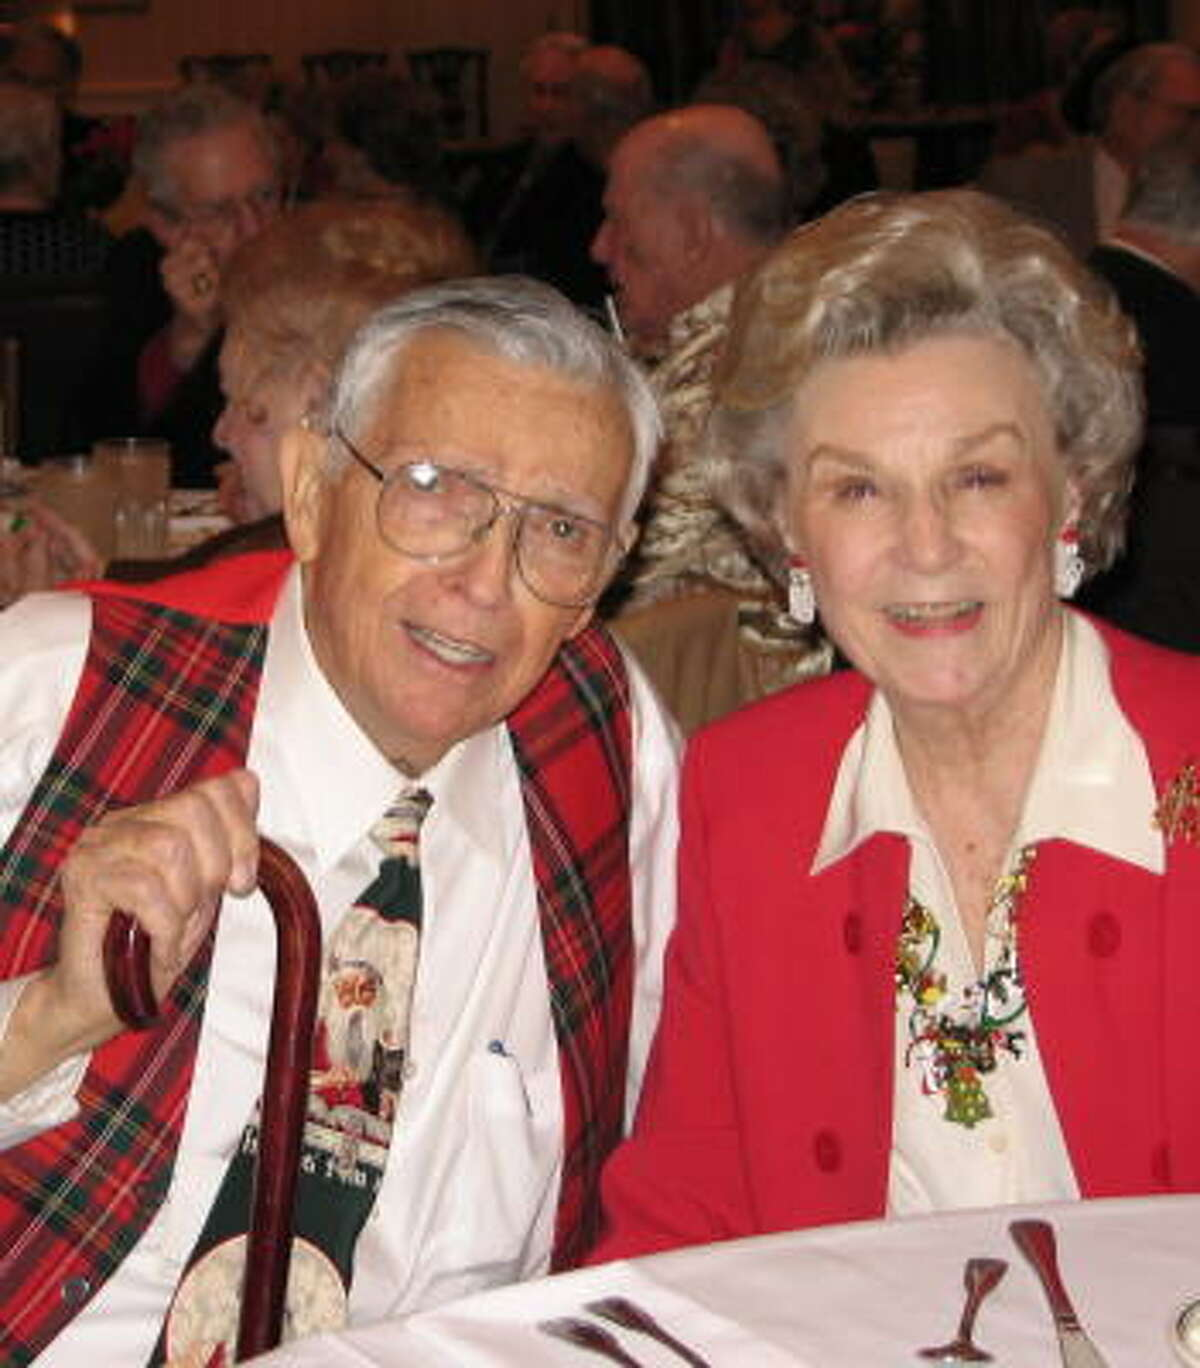 Joe Reynolds was married to his wife, Susie, for 61 years.